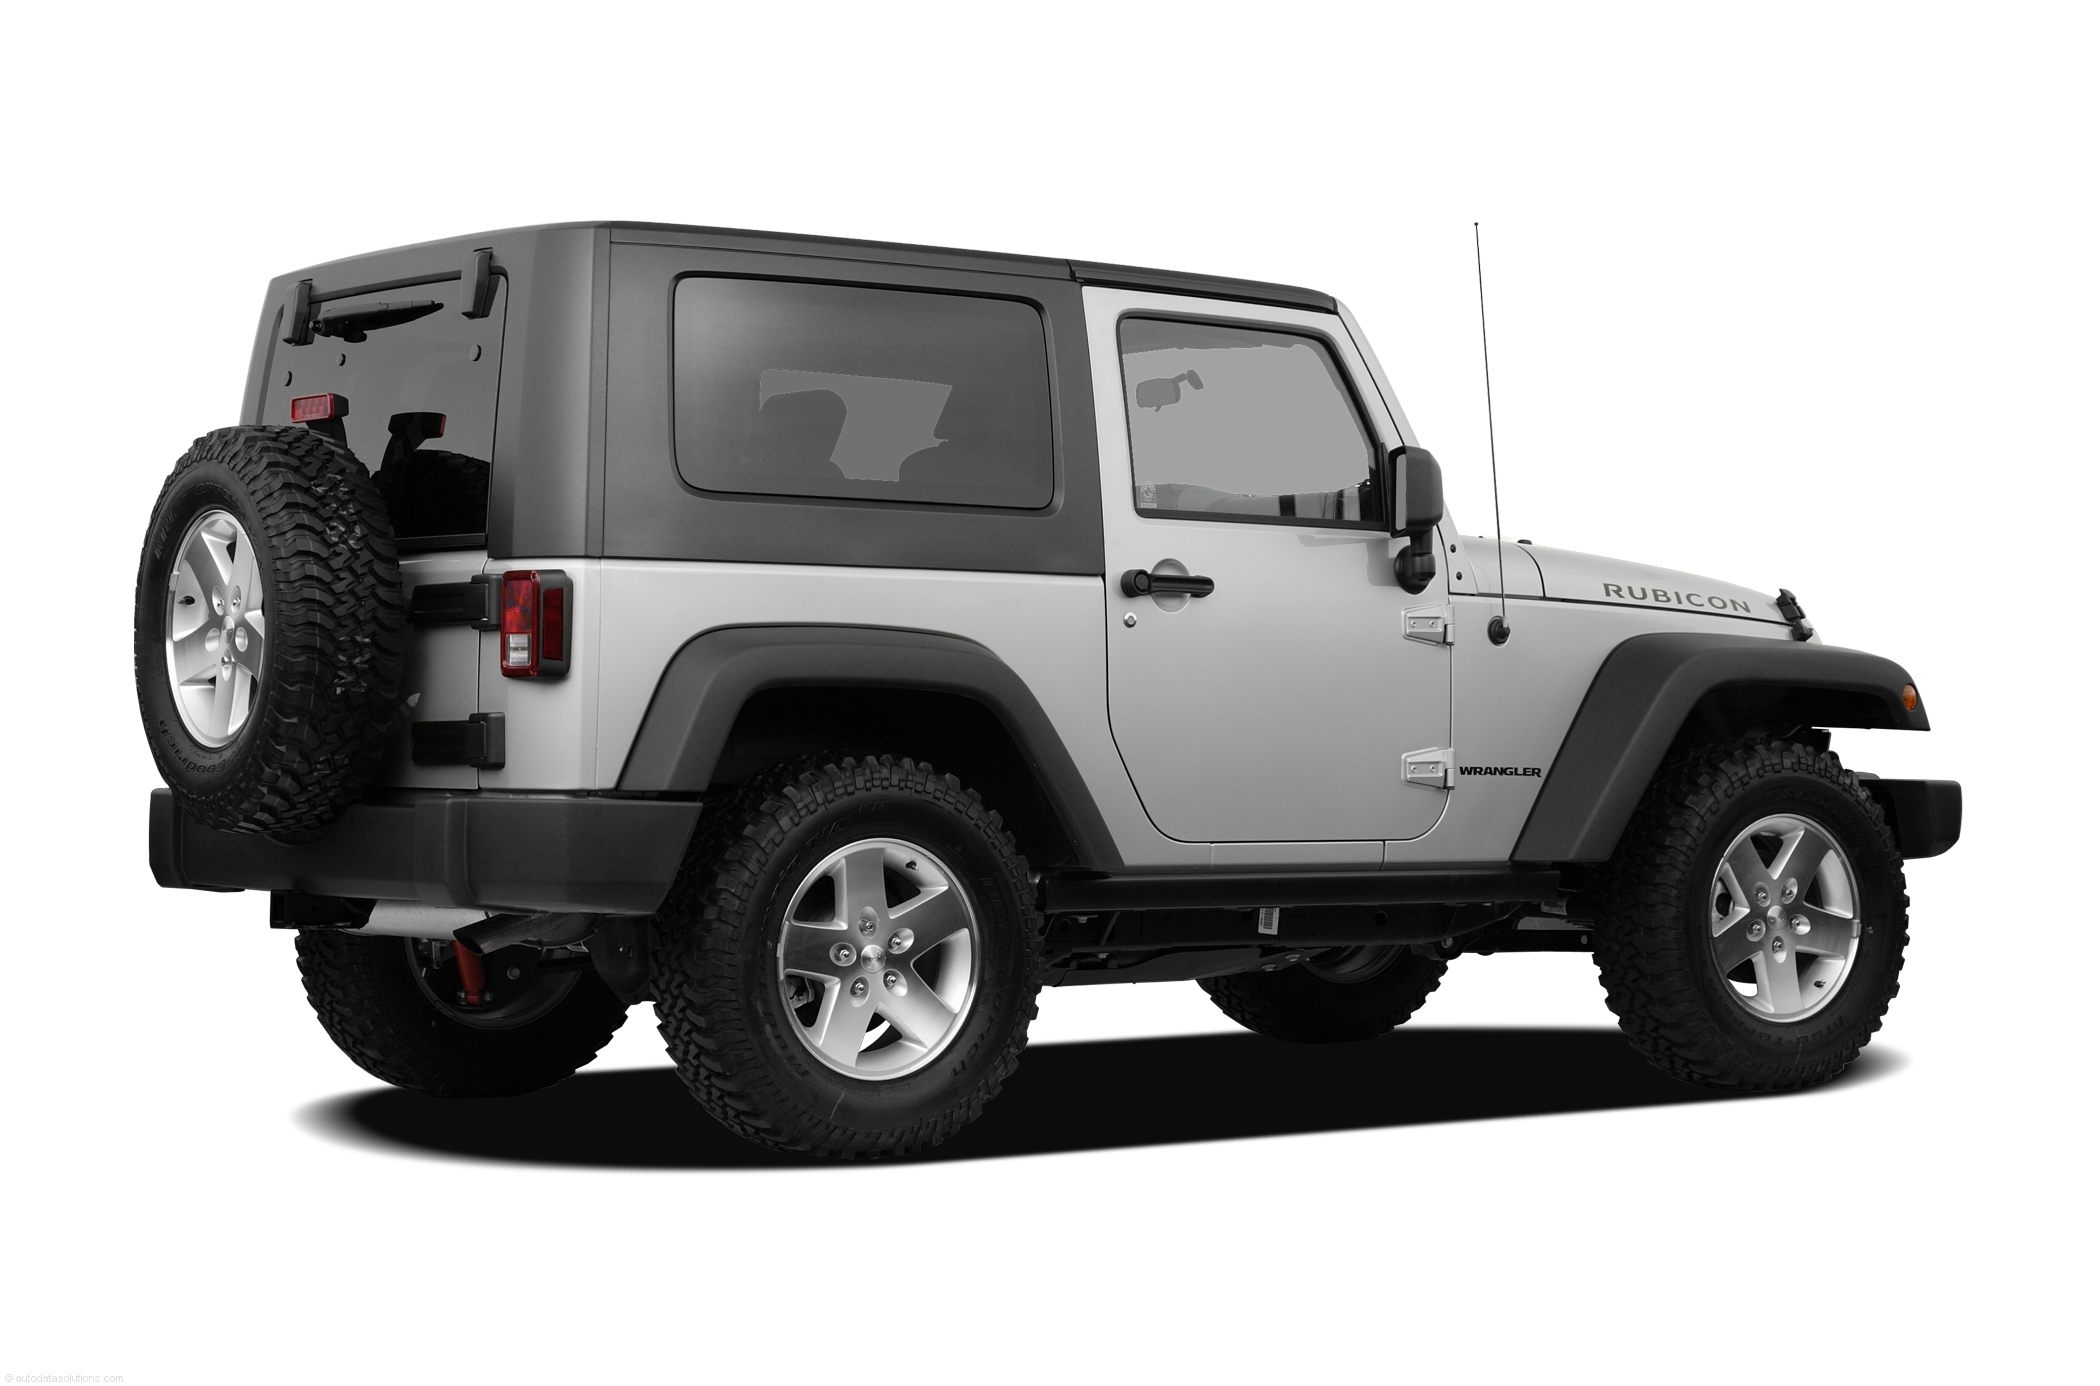 2010 jeep wrangler price photos reviews amp features jeep wrangler invoice